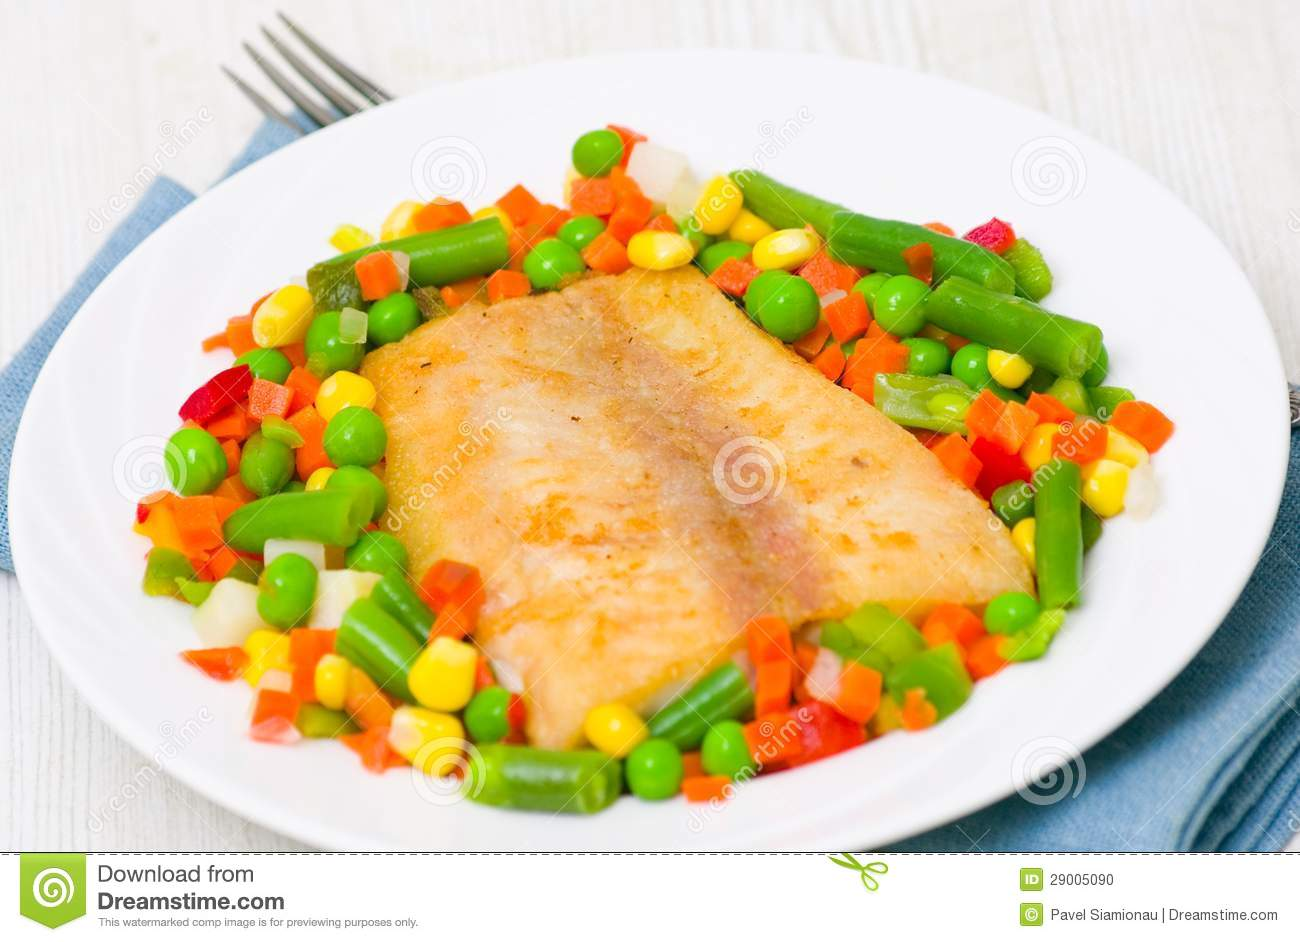 Fried fish with vegetables stock photo image 29005090 for Fish with vegetables